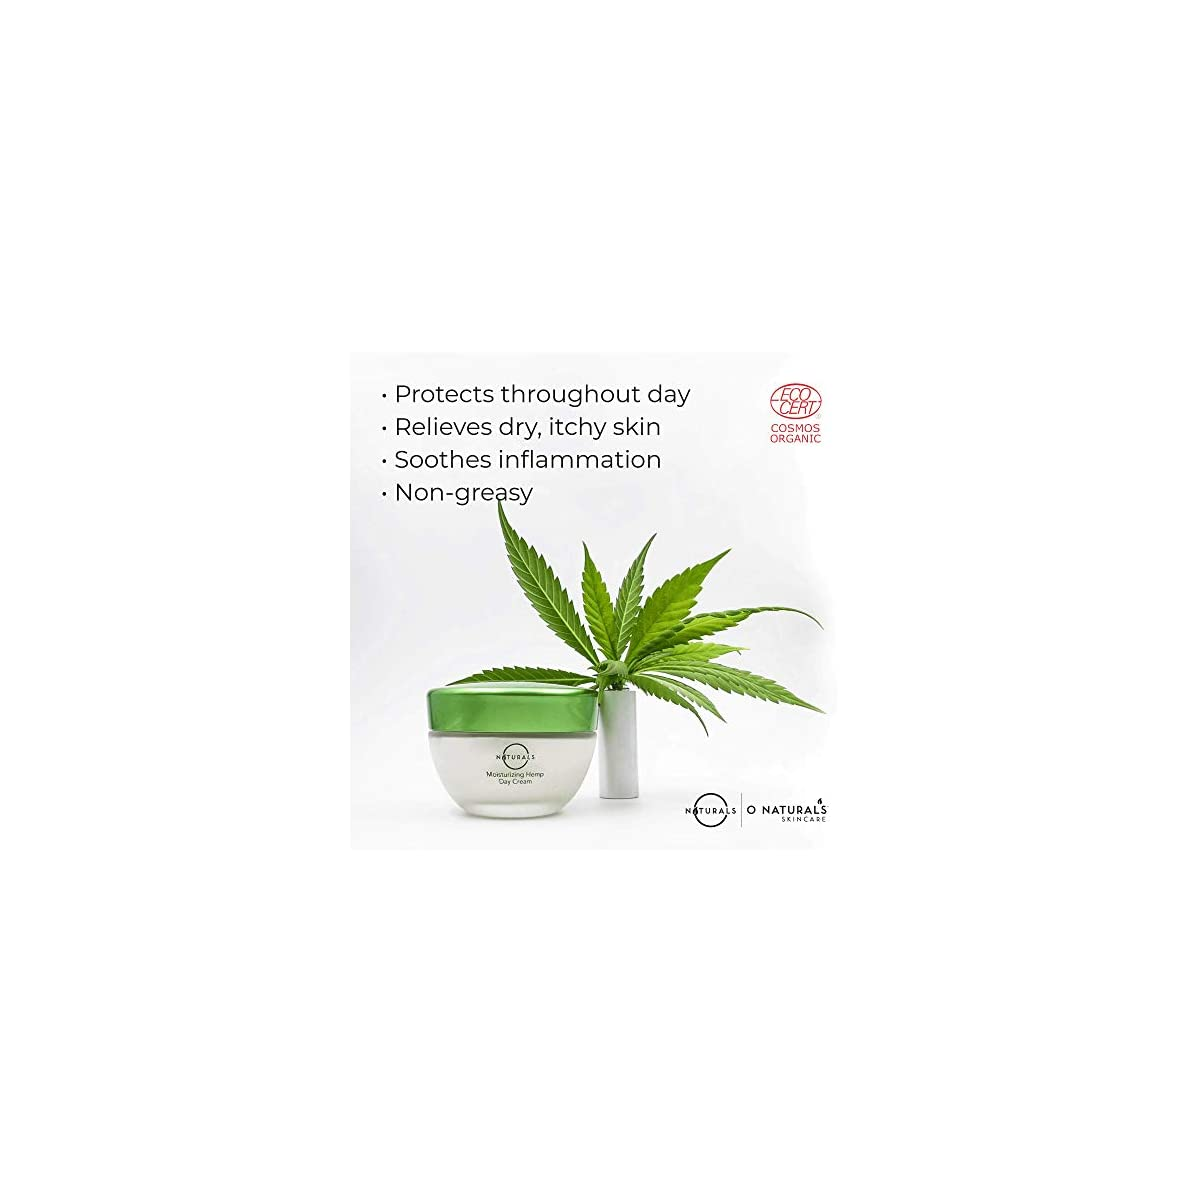 O-Naturals-Organic-Face-Moisturizer-Hemp-Oil-Day-Face-Neck-Anti-Aging-Cream-Hyaluronic-Acid-Hydrating-Relives-Dry-Skin-Boost-Collagen-Prevent-Signs-of-Aging-Eye-Repair-Women-Men-Skin-Care